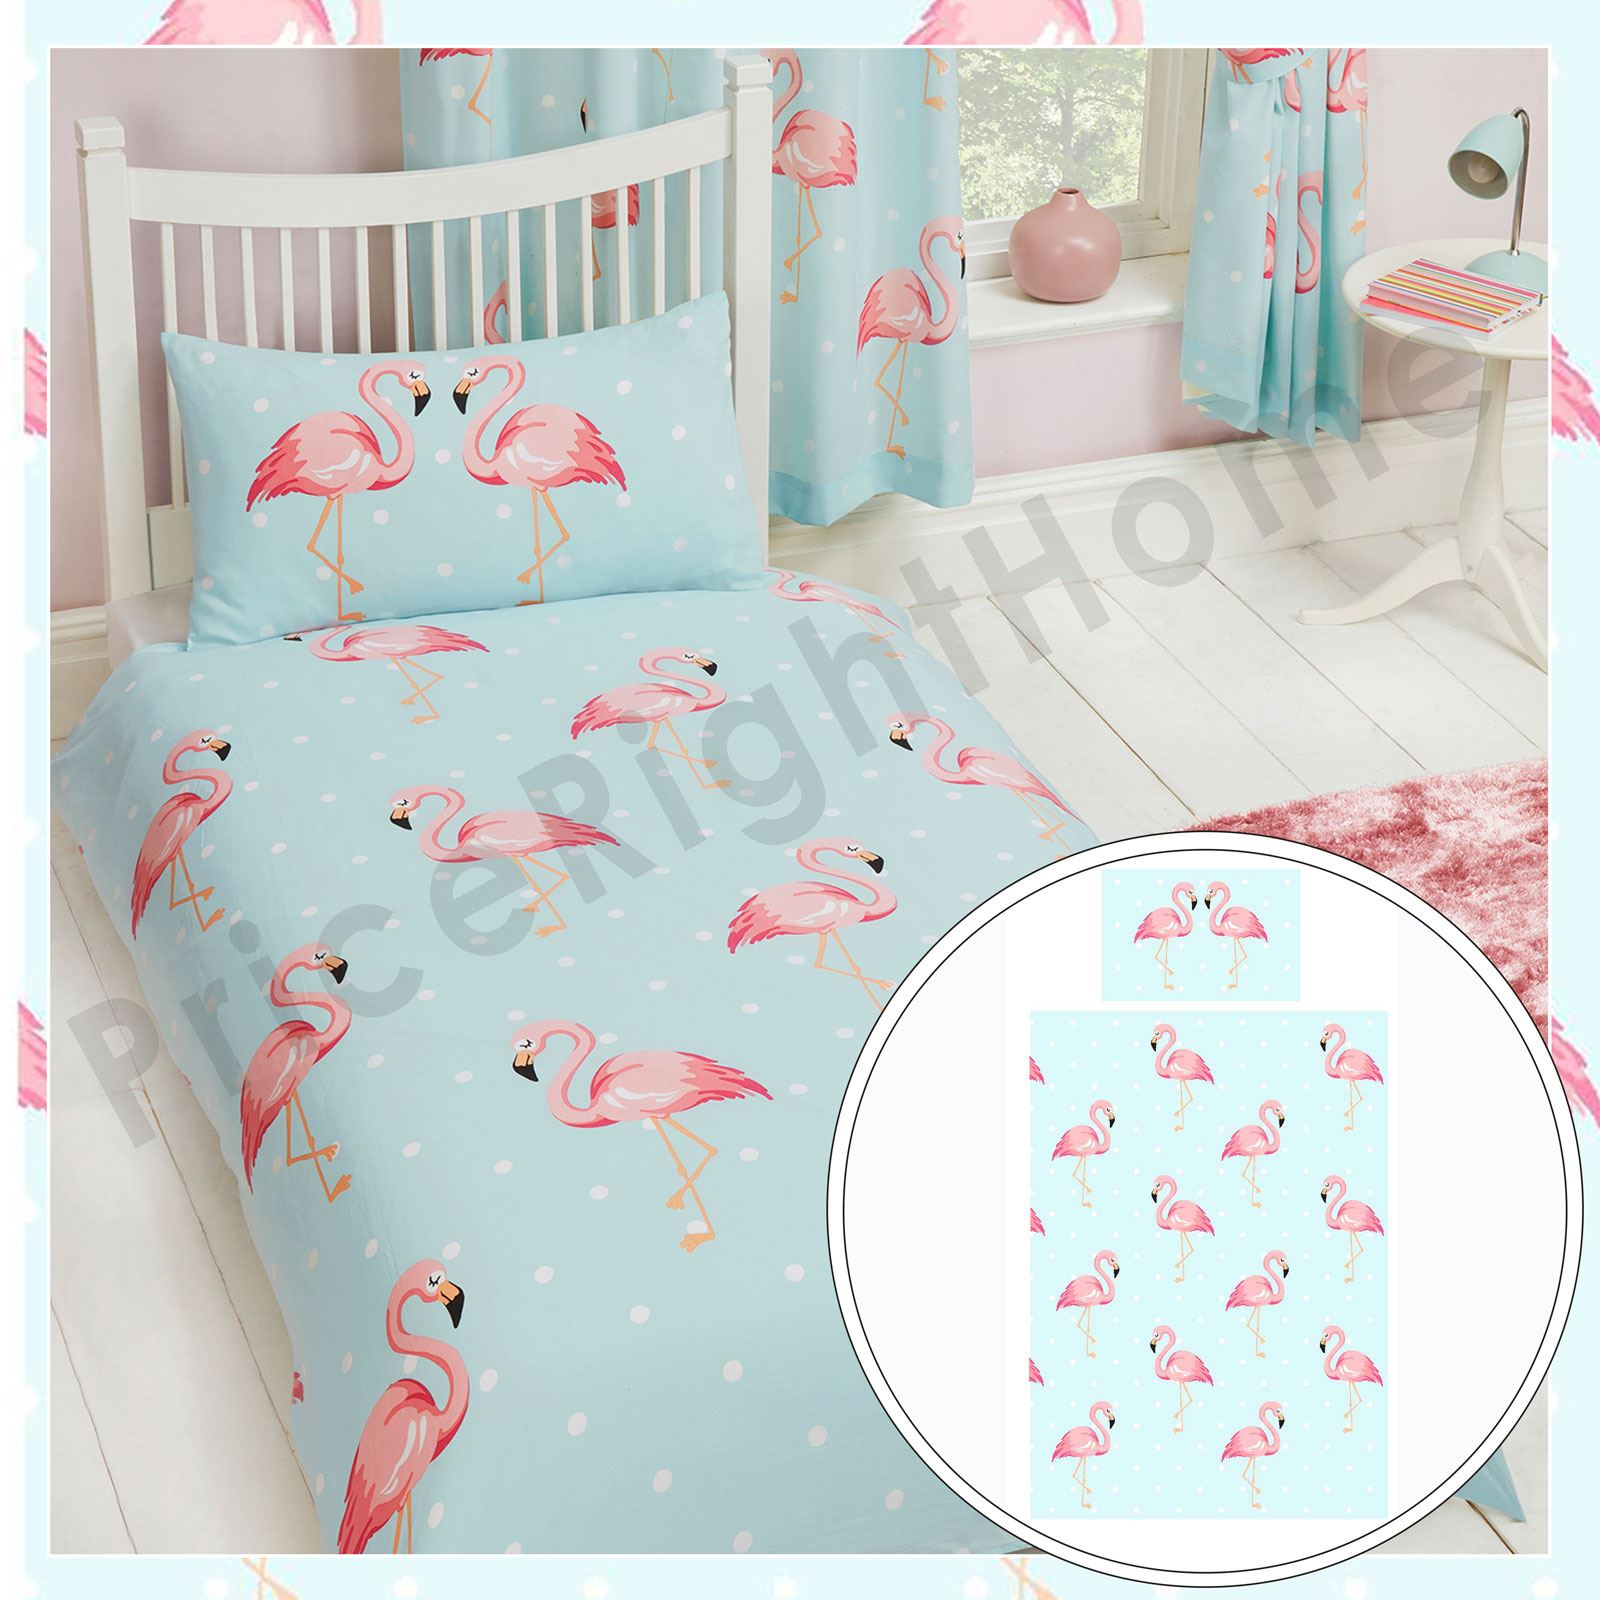 fifi flamant rose set housse de couette simple enfants. Black Bedroom Furniture Sets. Home Design Ideas